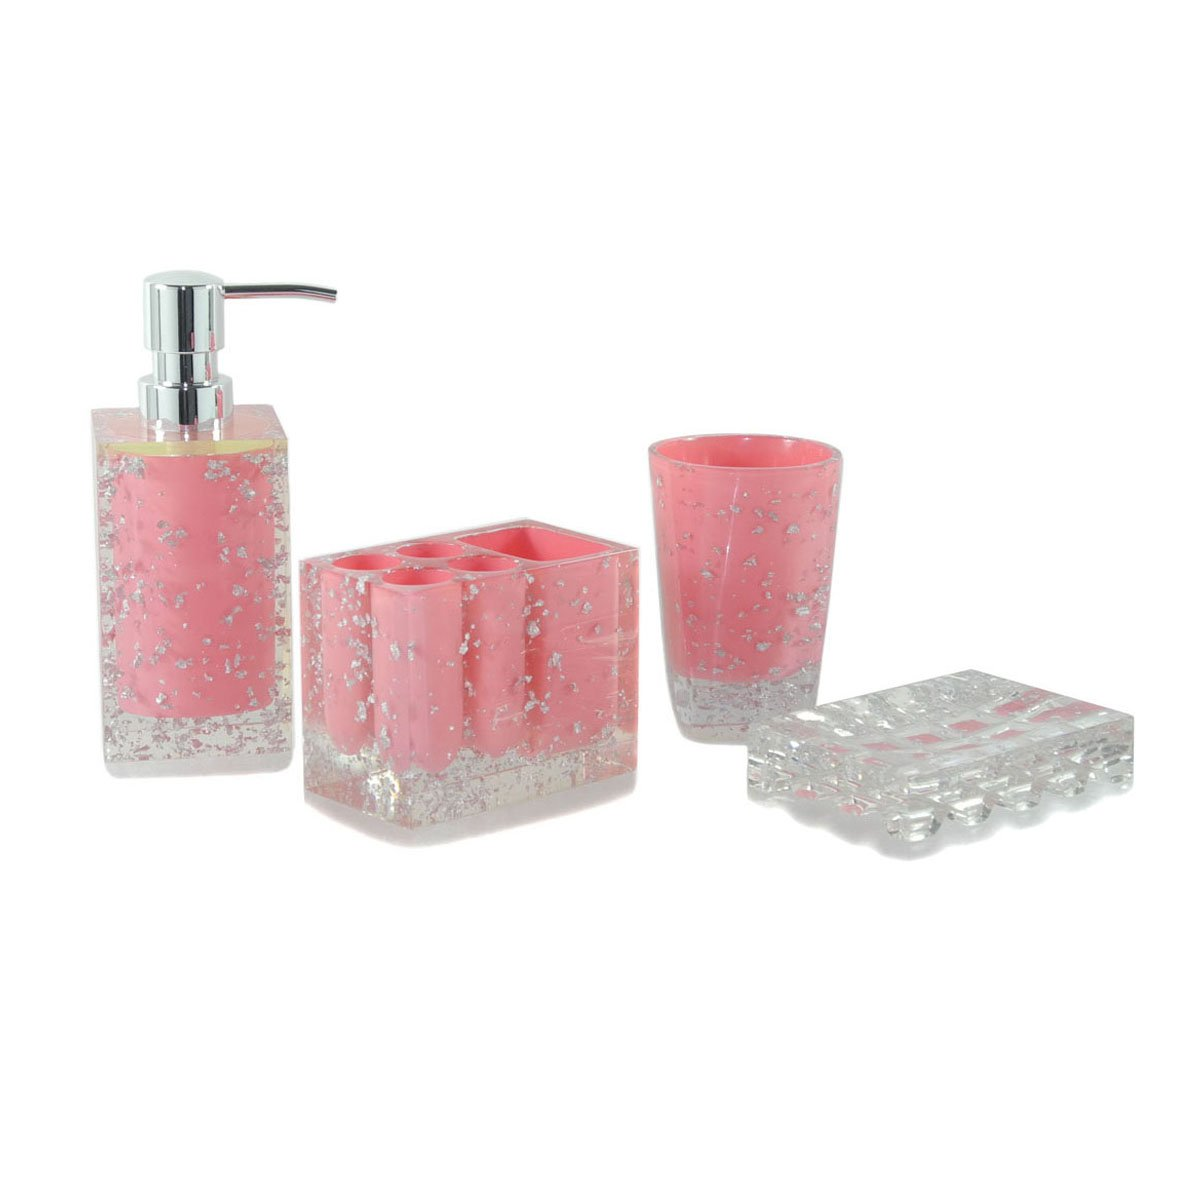 Dream Bath Pink Memories Bath Ensemble 4 Piece Bathroom Accessories Set  Luxury Bath Accessory Bath Set Soap Dispenser/Toothbrush  Holder/Tumbler/Soap Dish: ...